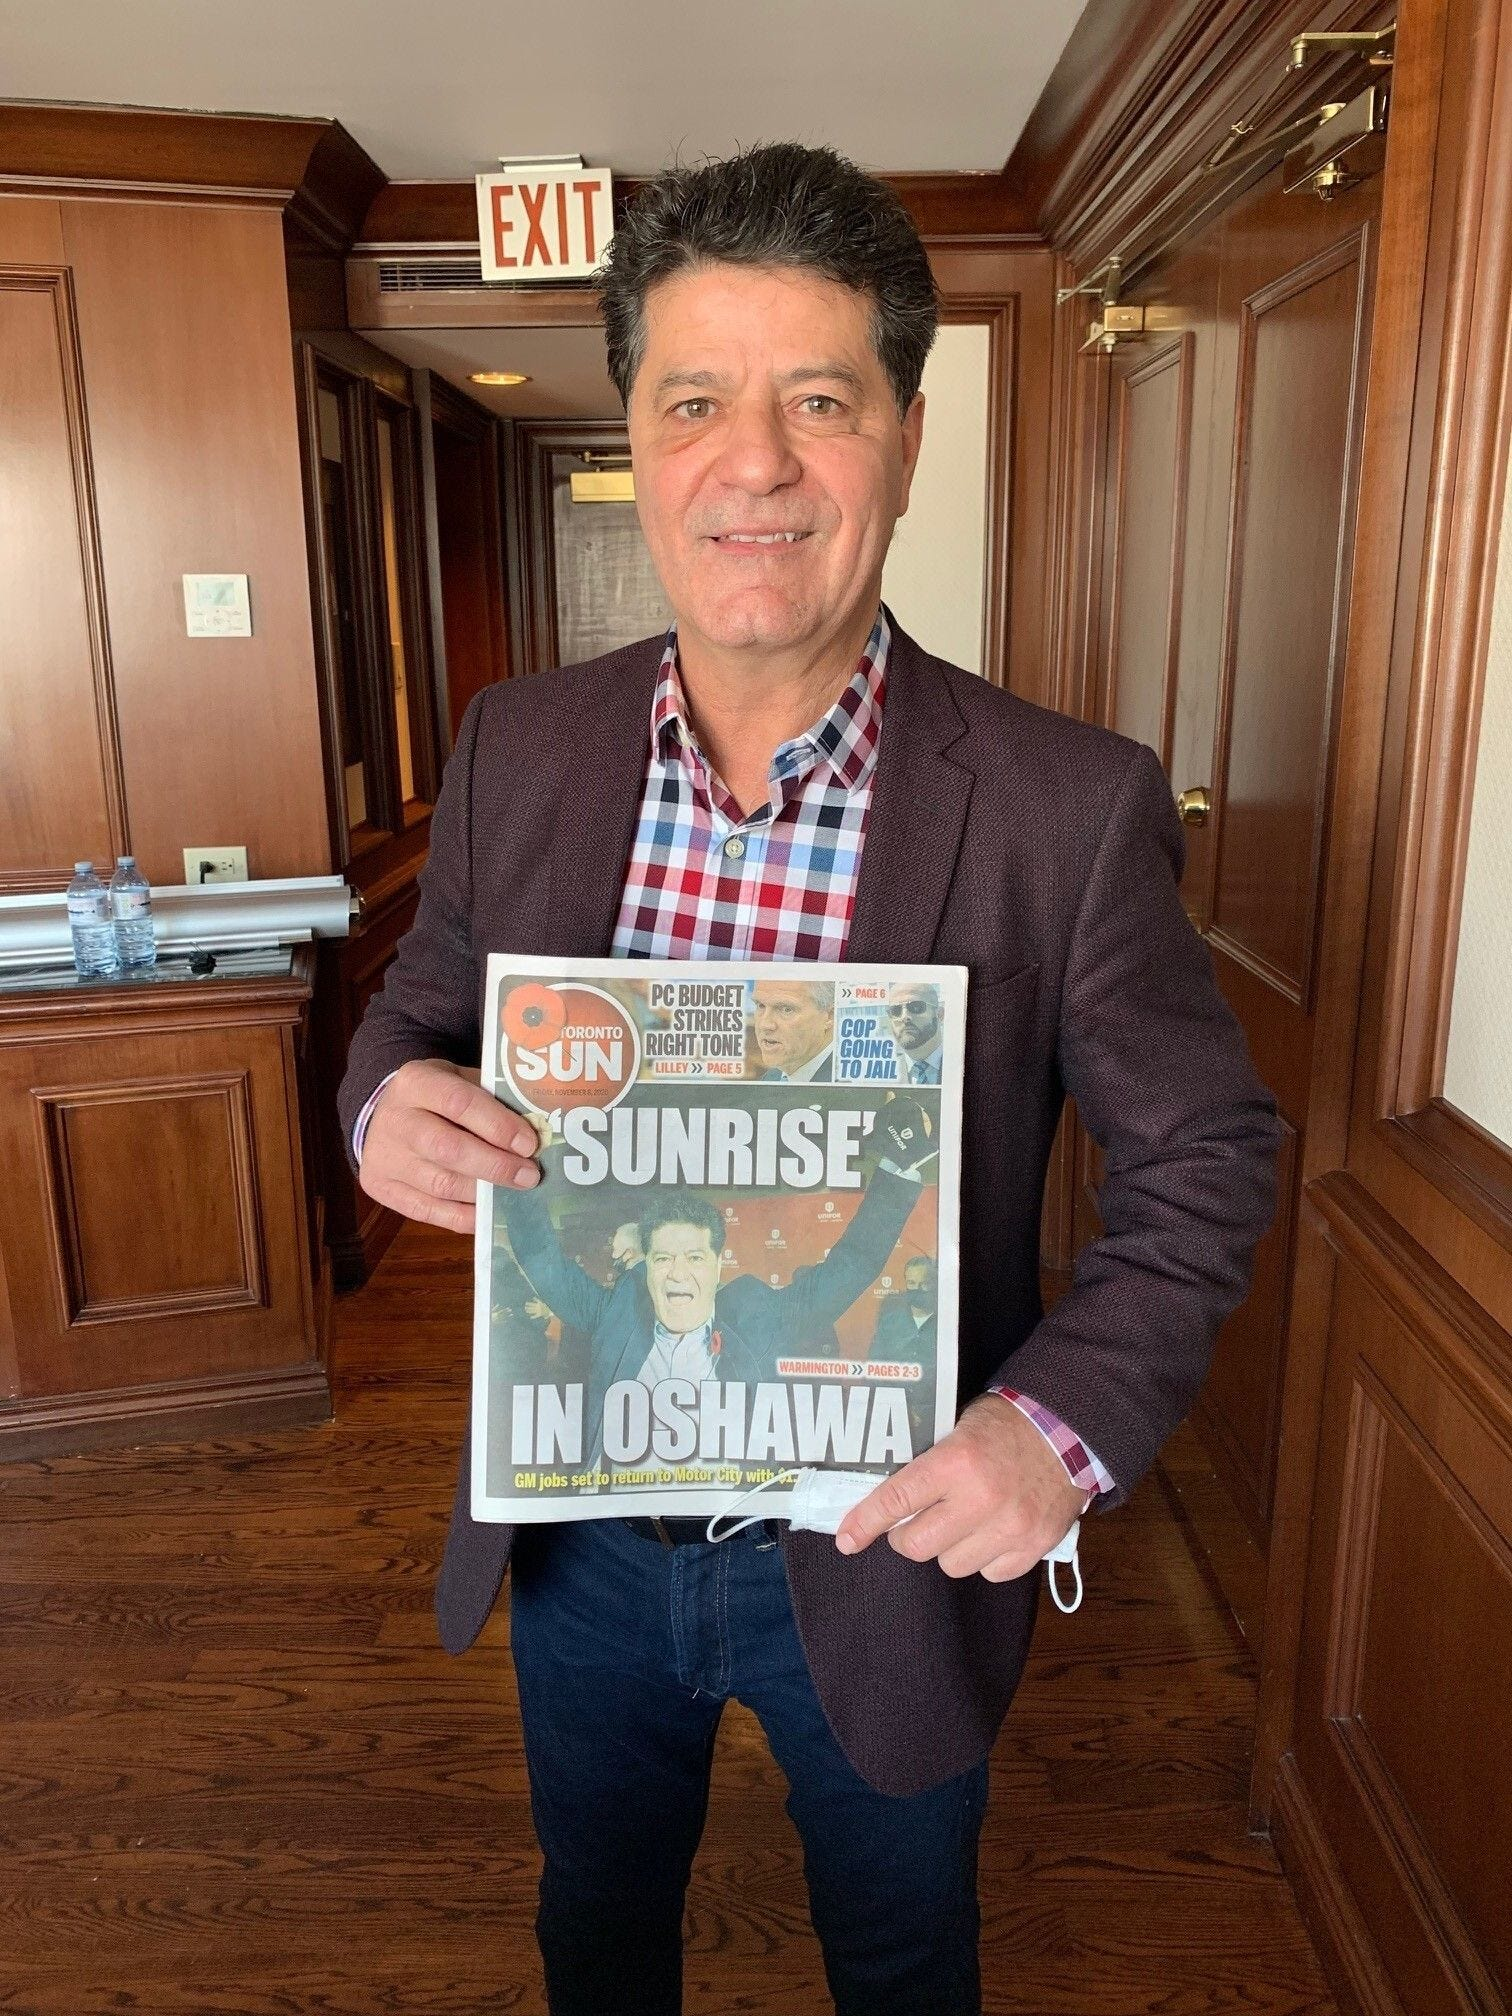 """Unifor National President Jerry Dias displays the front page of the Toronto Sun newspaper with the headline """"'Sunrise' in Oshawa"""" on Nov. 6. Unifor got General Motors to reallocate product to Oshawa to restart the assembly lines after GM had said it would idle vehicle production there."""